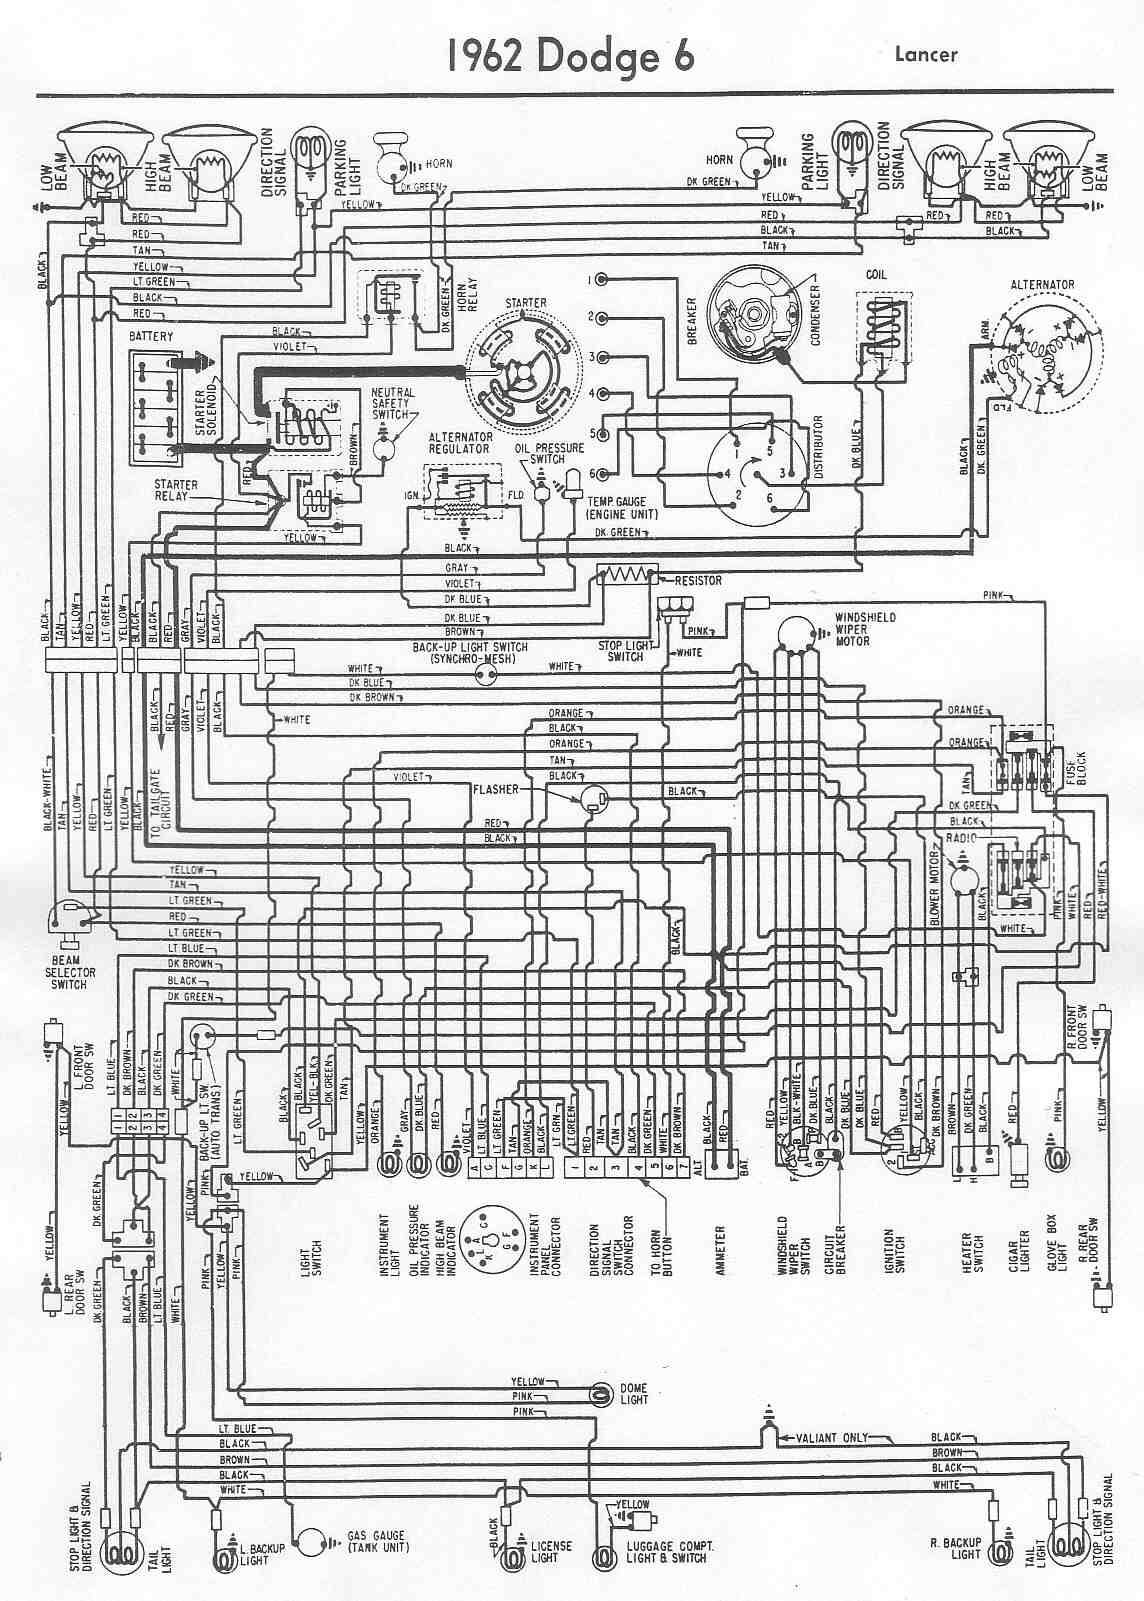 Ford Alternator Wiring Diagrams 1997 Electrical Diagram Schematics Lighting Circuit For Two Lights F100 A Dodge Lancer Services U2022 Regulator